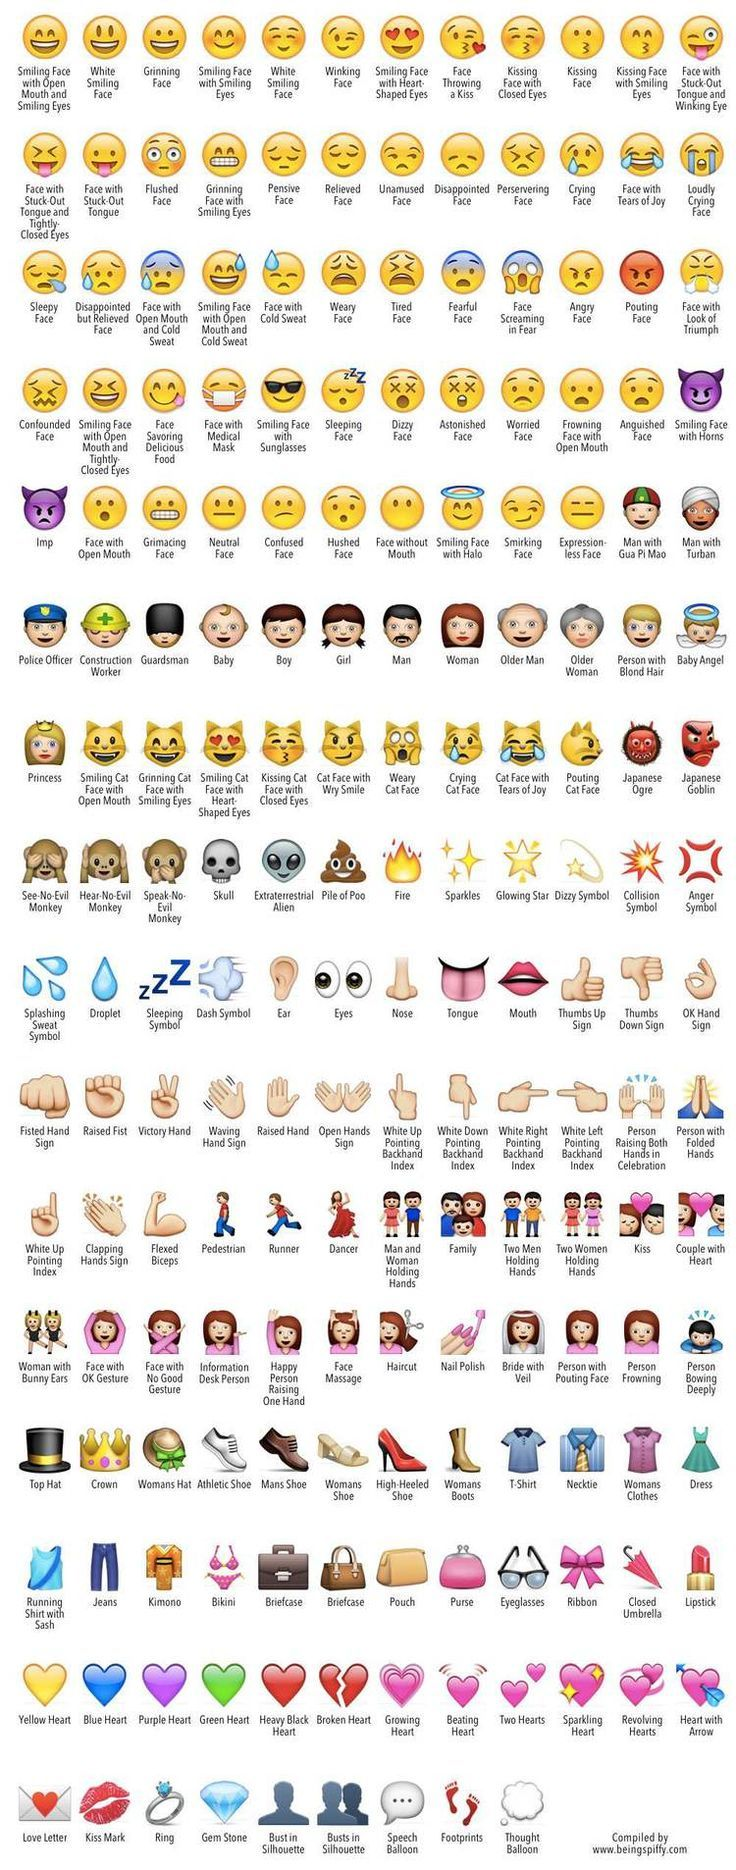 Emoji Defined Being Spiffy Emoji Defined Emoji Emoji Pictures